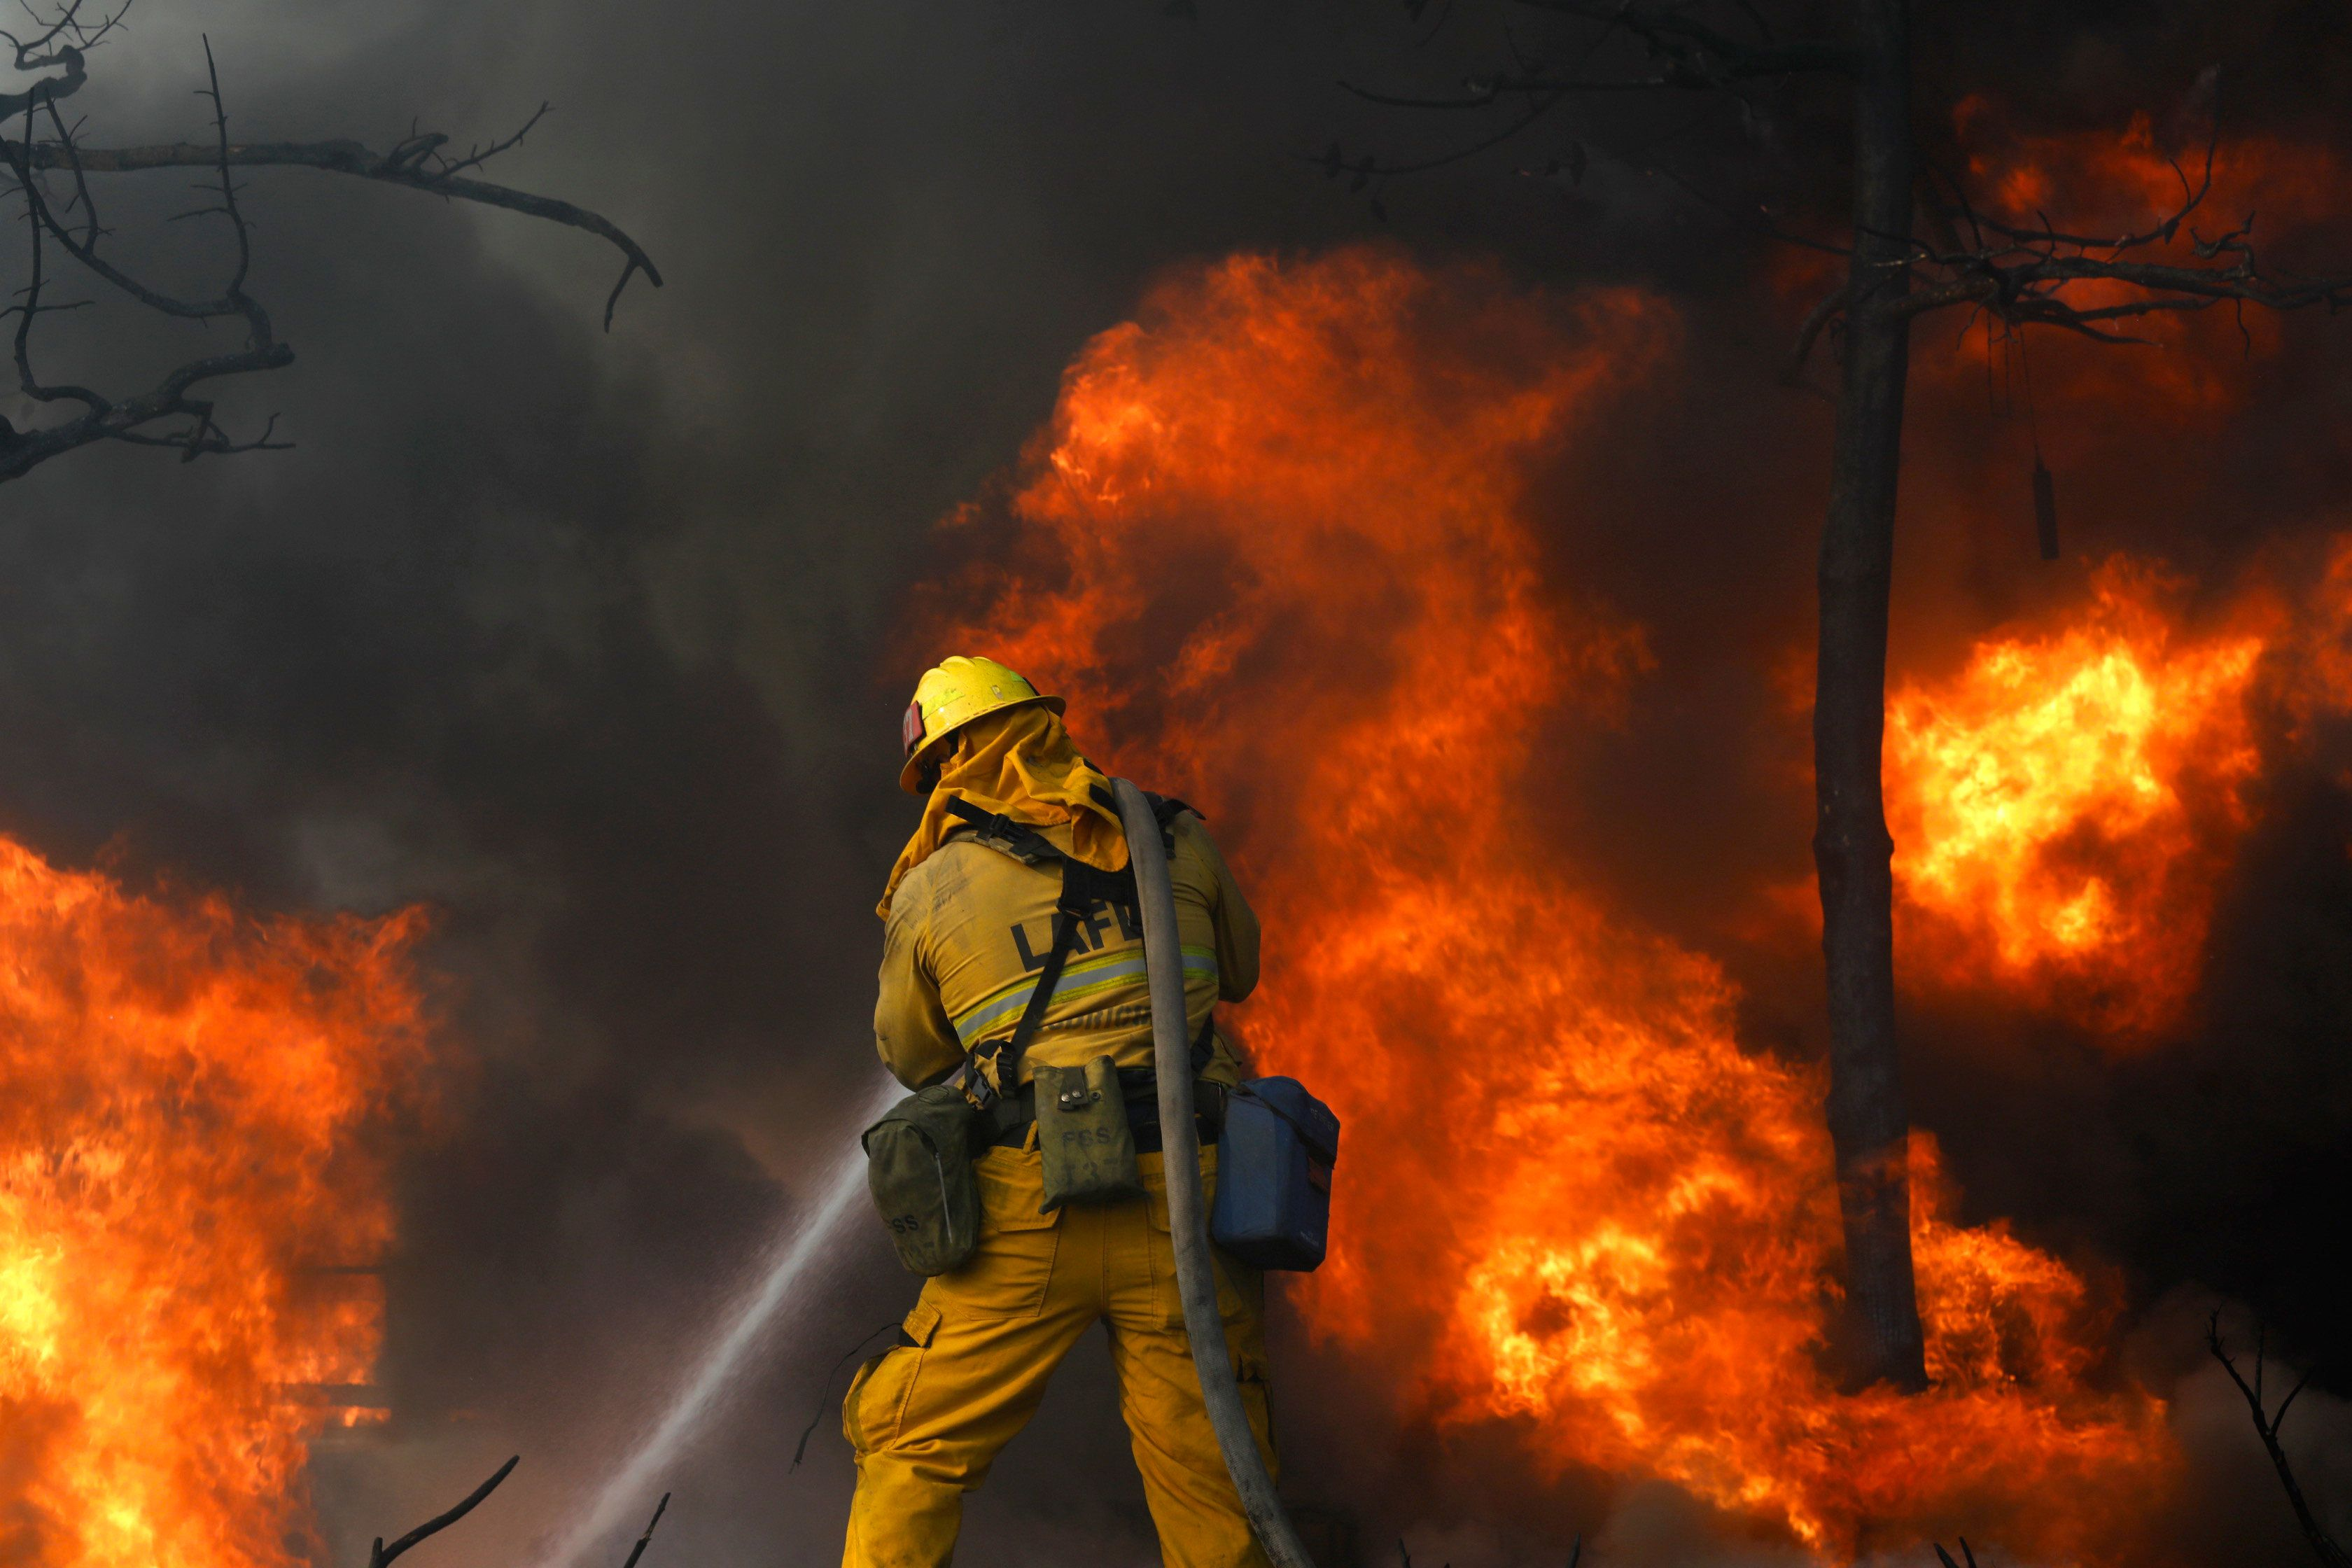 BEL-AIR, CA - DECEMBER 6: Firefighters try and save a home along Linda Flora Dr. in Bel Air, where the Skirball fire prompted a full closure of the 405 Freeway as well as mandatory evacuations in an area of multimillion-dollar homes on December 6, 2017 in Bel-Air, California. (Photo by Genaro Molina / Los Angeles Times via Getty Images)